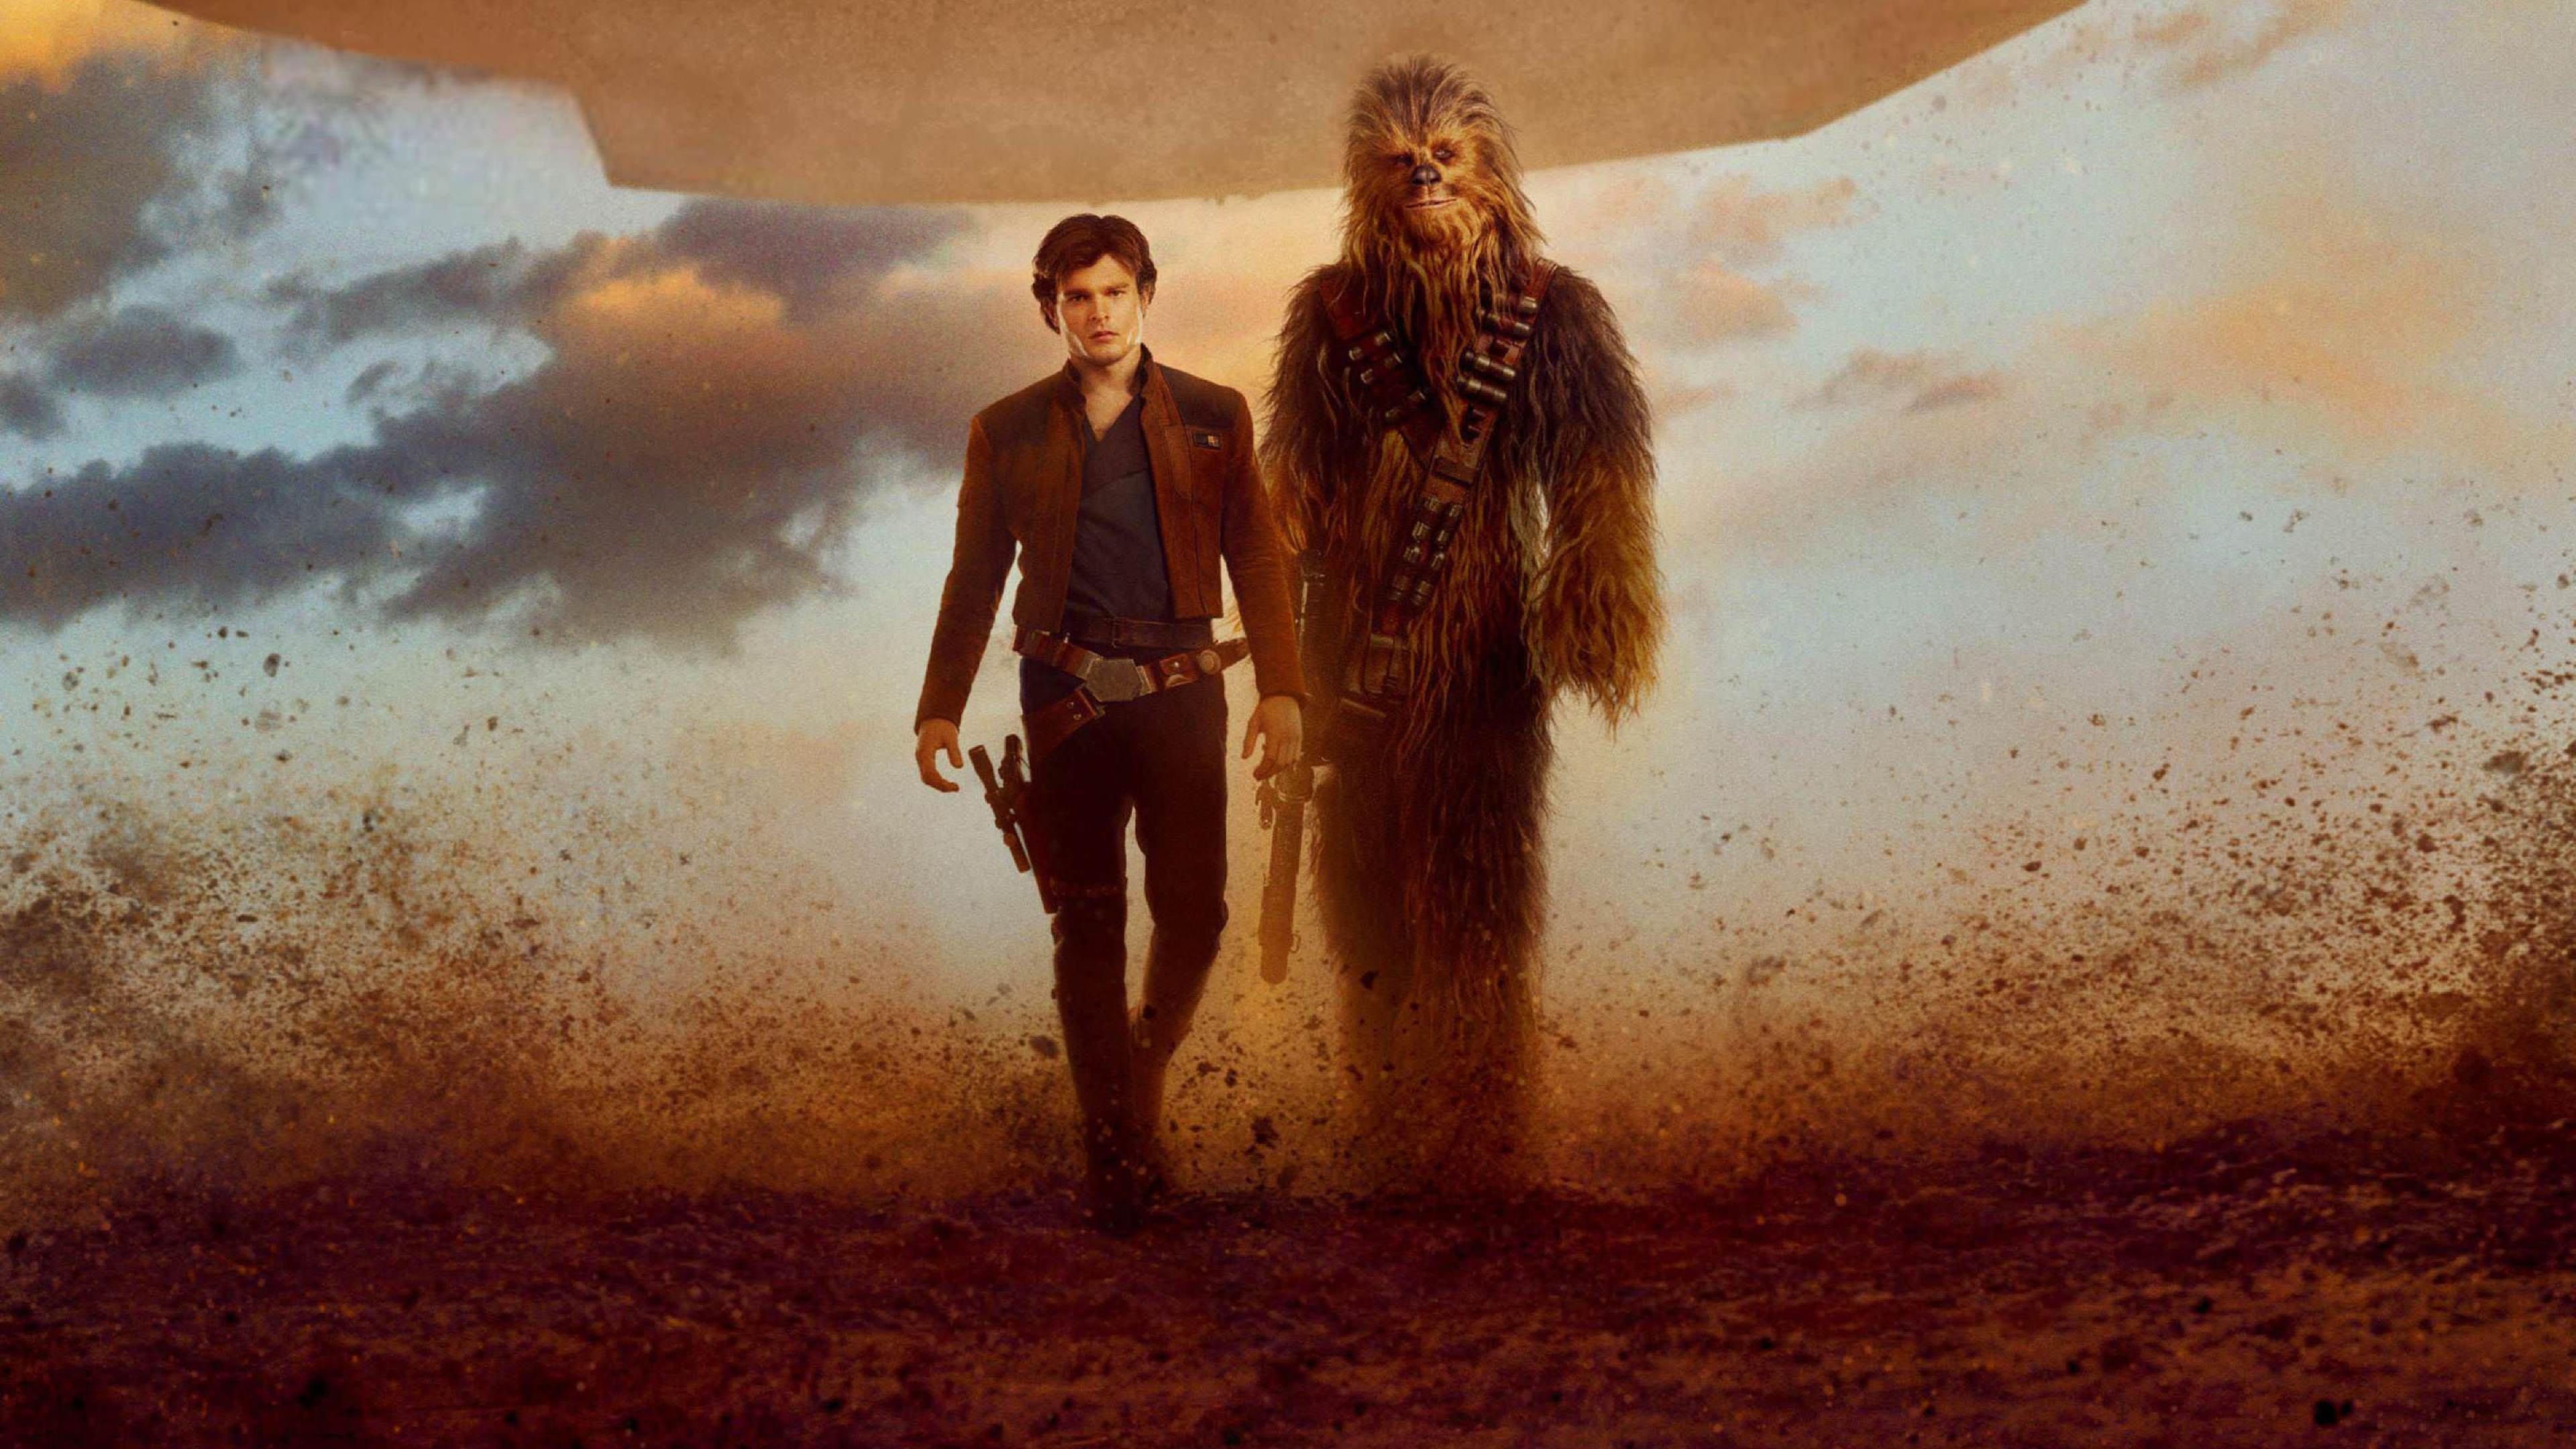 3840x2160 Han Solo And Chewbacca In Solo A Star Wars Story 4k Wallpaper Hd Movies 4k Wallpapers Images Photos And Background